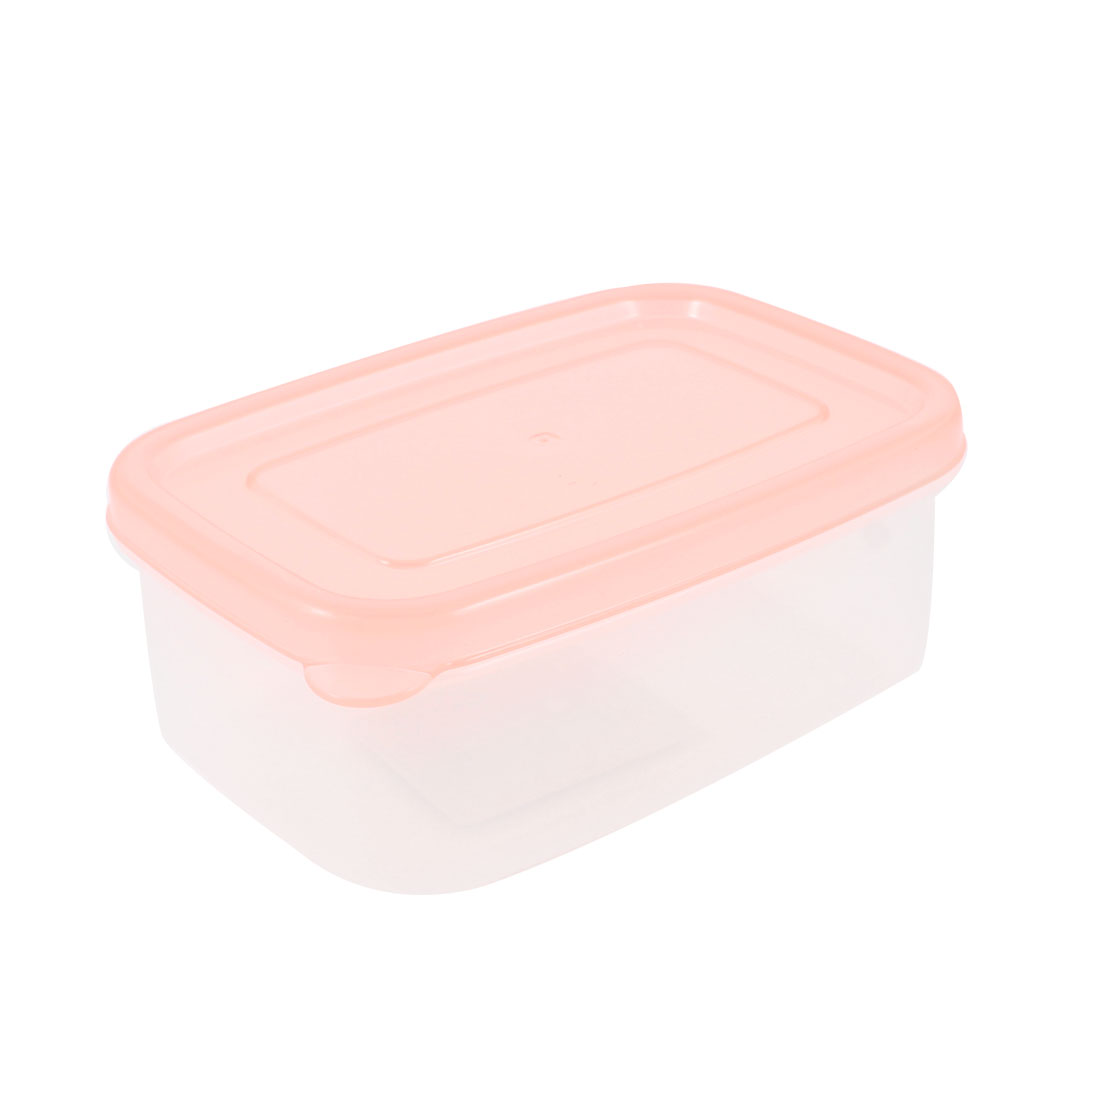 Clear Pink Rectangle Airtight Food Container Crisper Kitchen Ware